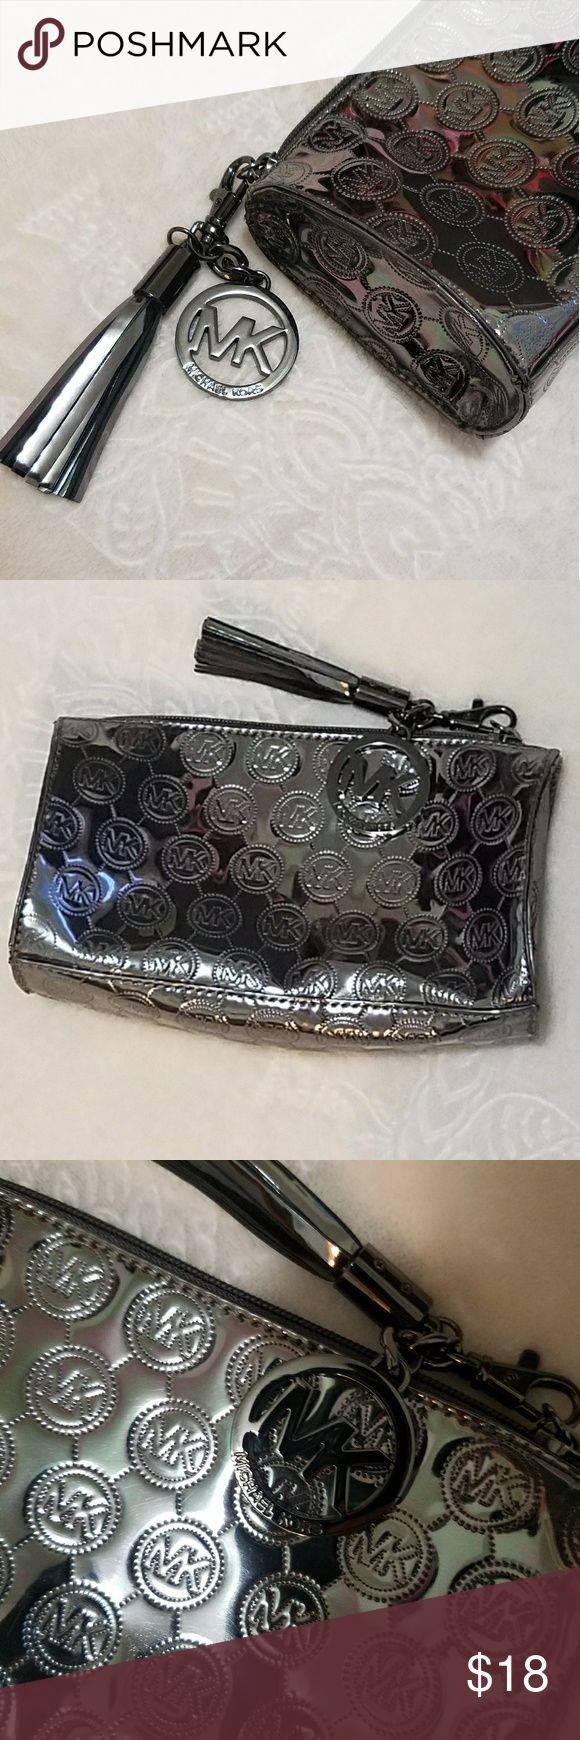 MK Hand-Purse/Hand Wallet In awesome  condition  Nice silver/metallic color.  Small yet spactions in the inside  Can be used as a make-up bag if wanted to😊  *Please note* : I can not verfy authenticity, for it was a gift, but it could be authentic or not*  For I'm selling at a lower cost😊 Michael Kors Bags